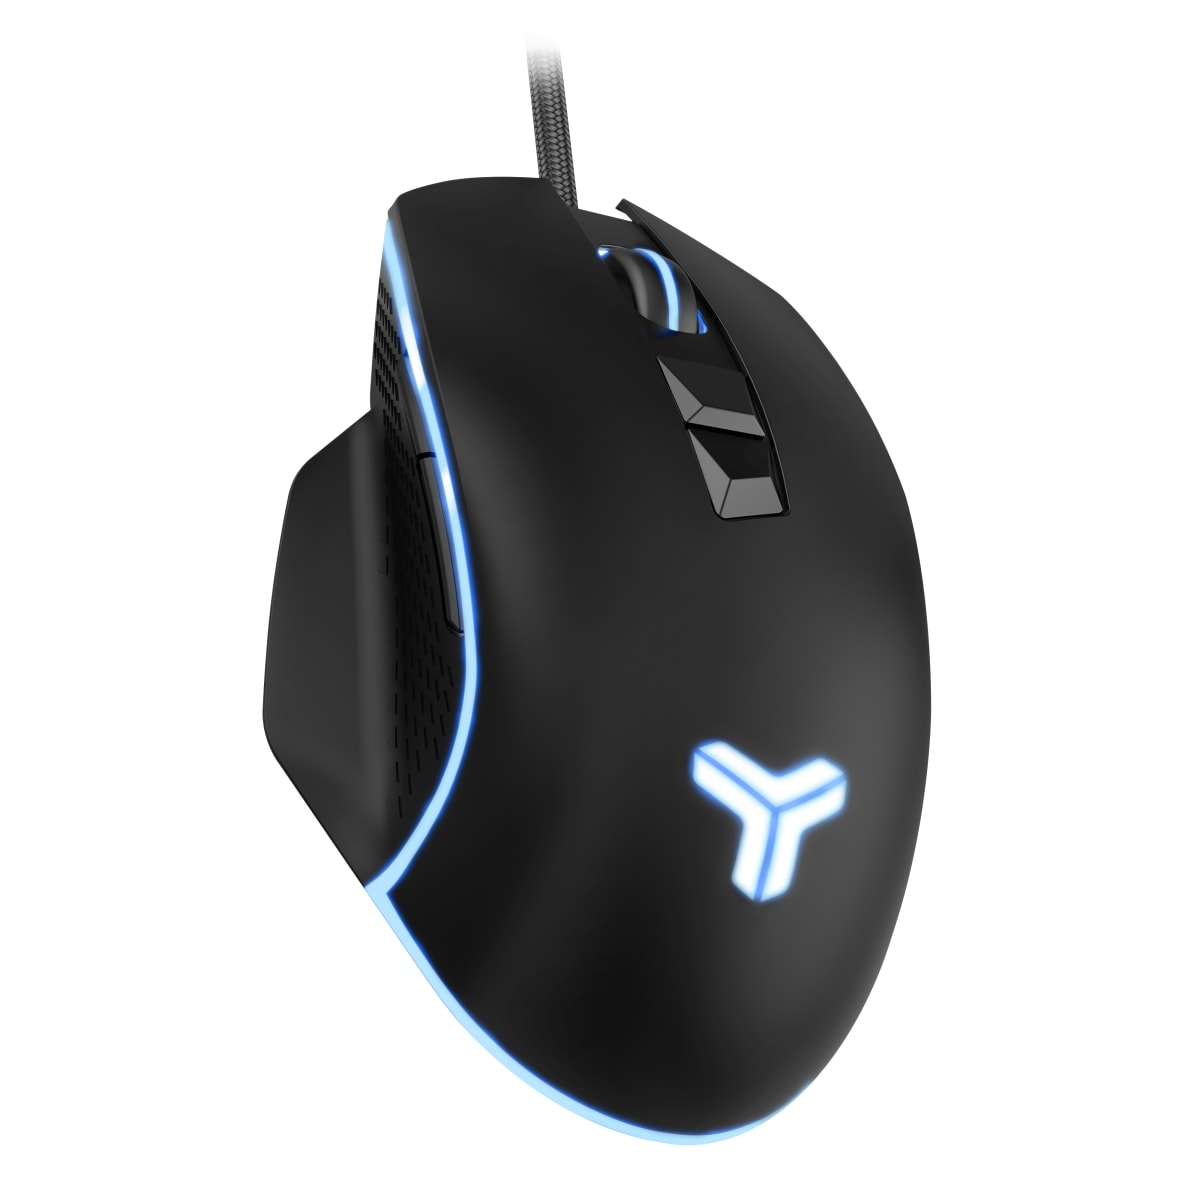 MY-200 CONFORT gaming mouse